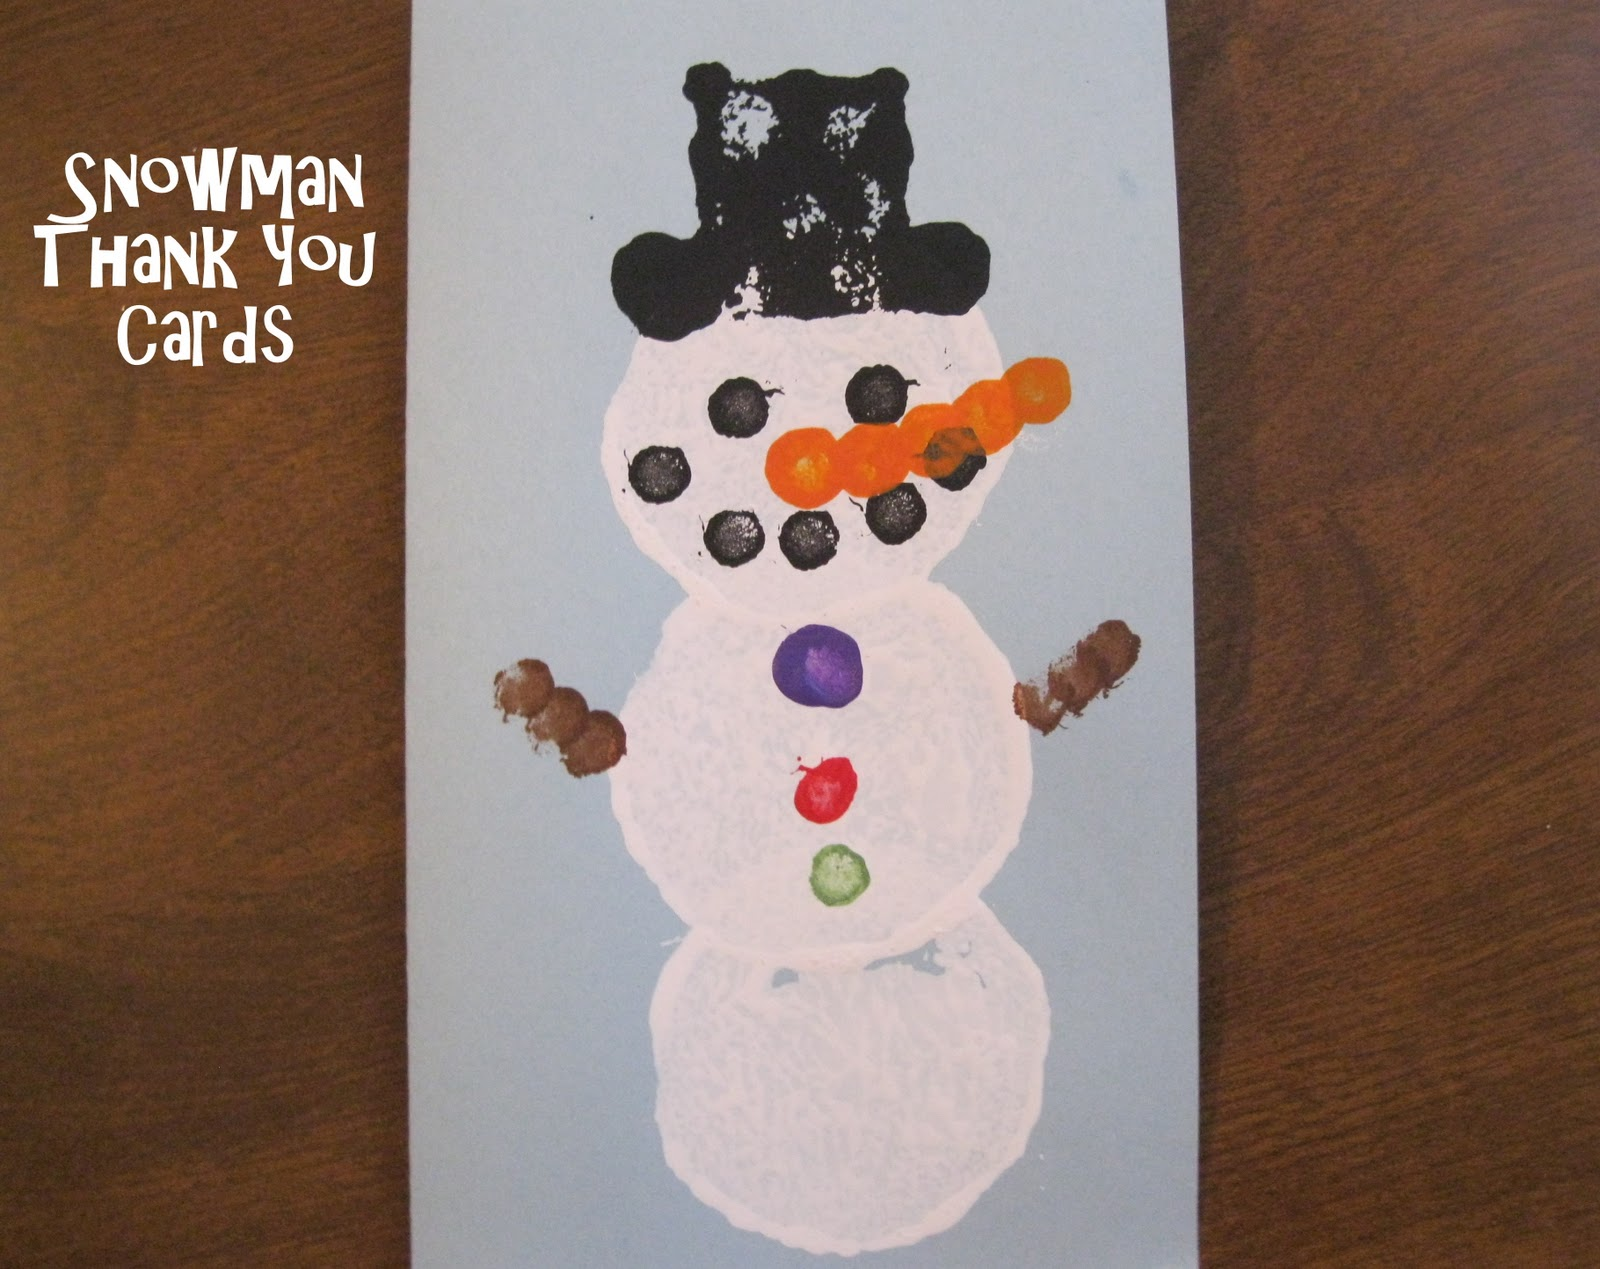 Snowman Christmas Card Ideas For Kids.Kids Snowman Craft Peek A Boo Pages Patterns Fabric More